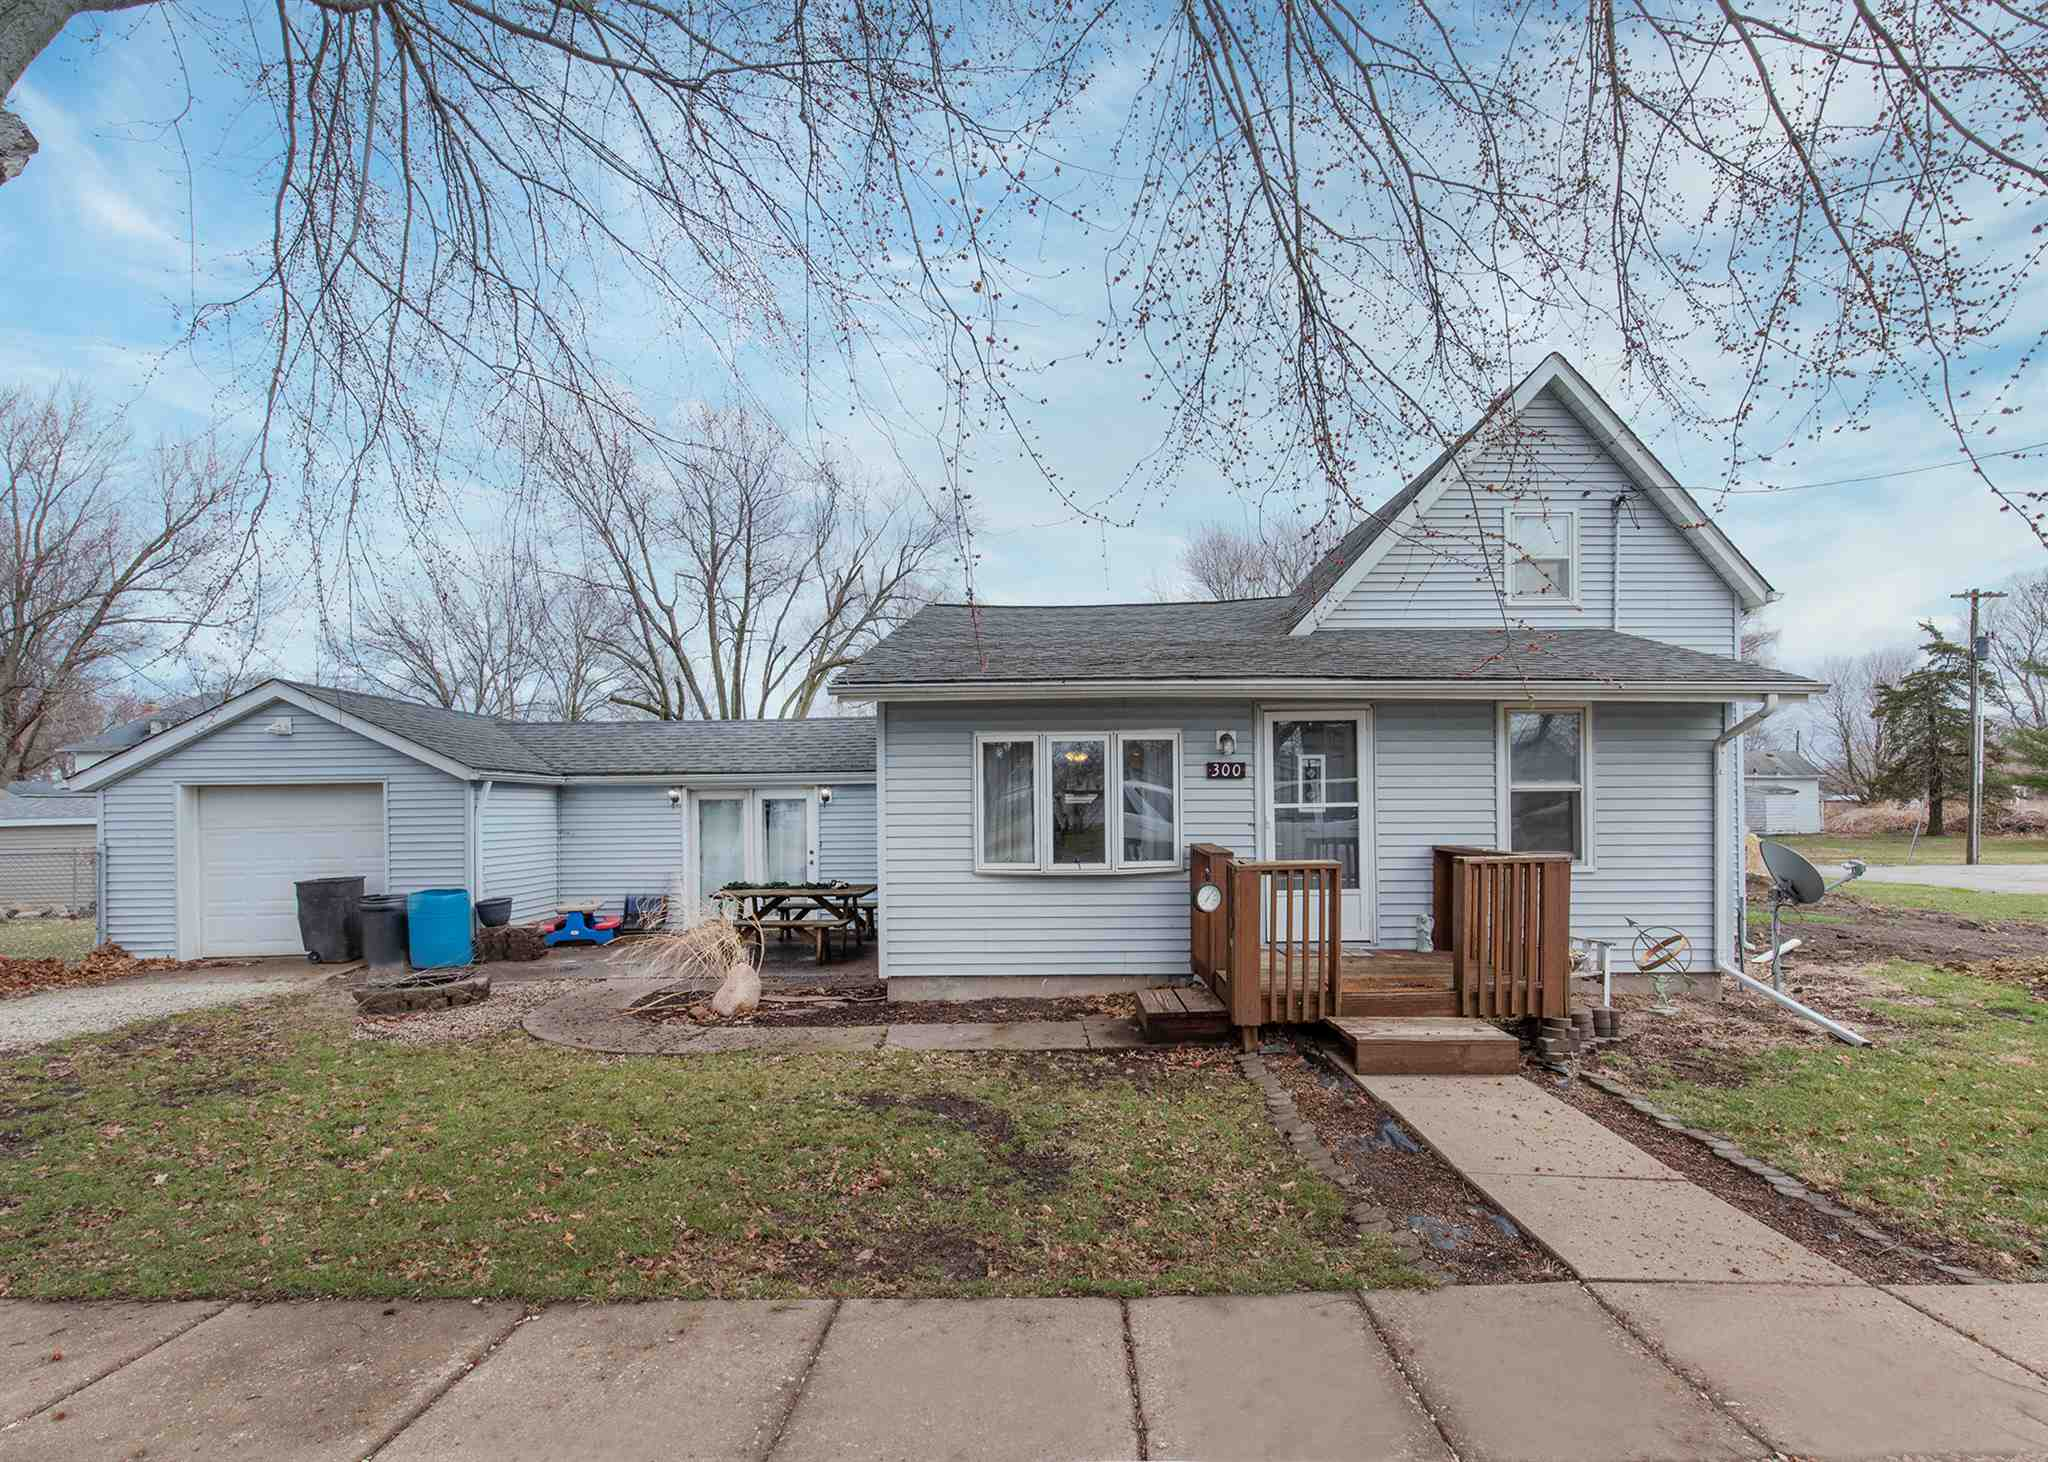 300 N 5TH Property Photo - New Windsor, IL real estate listing